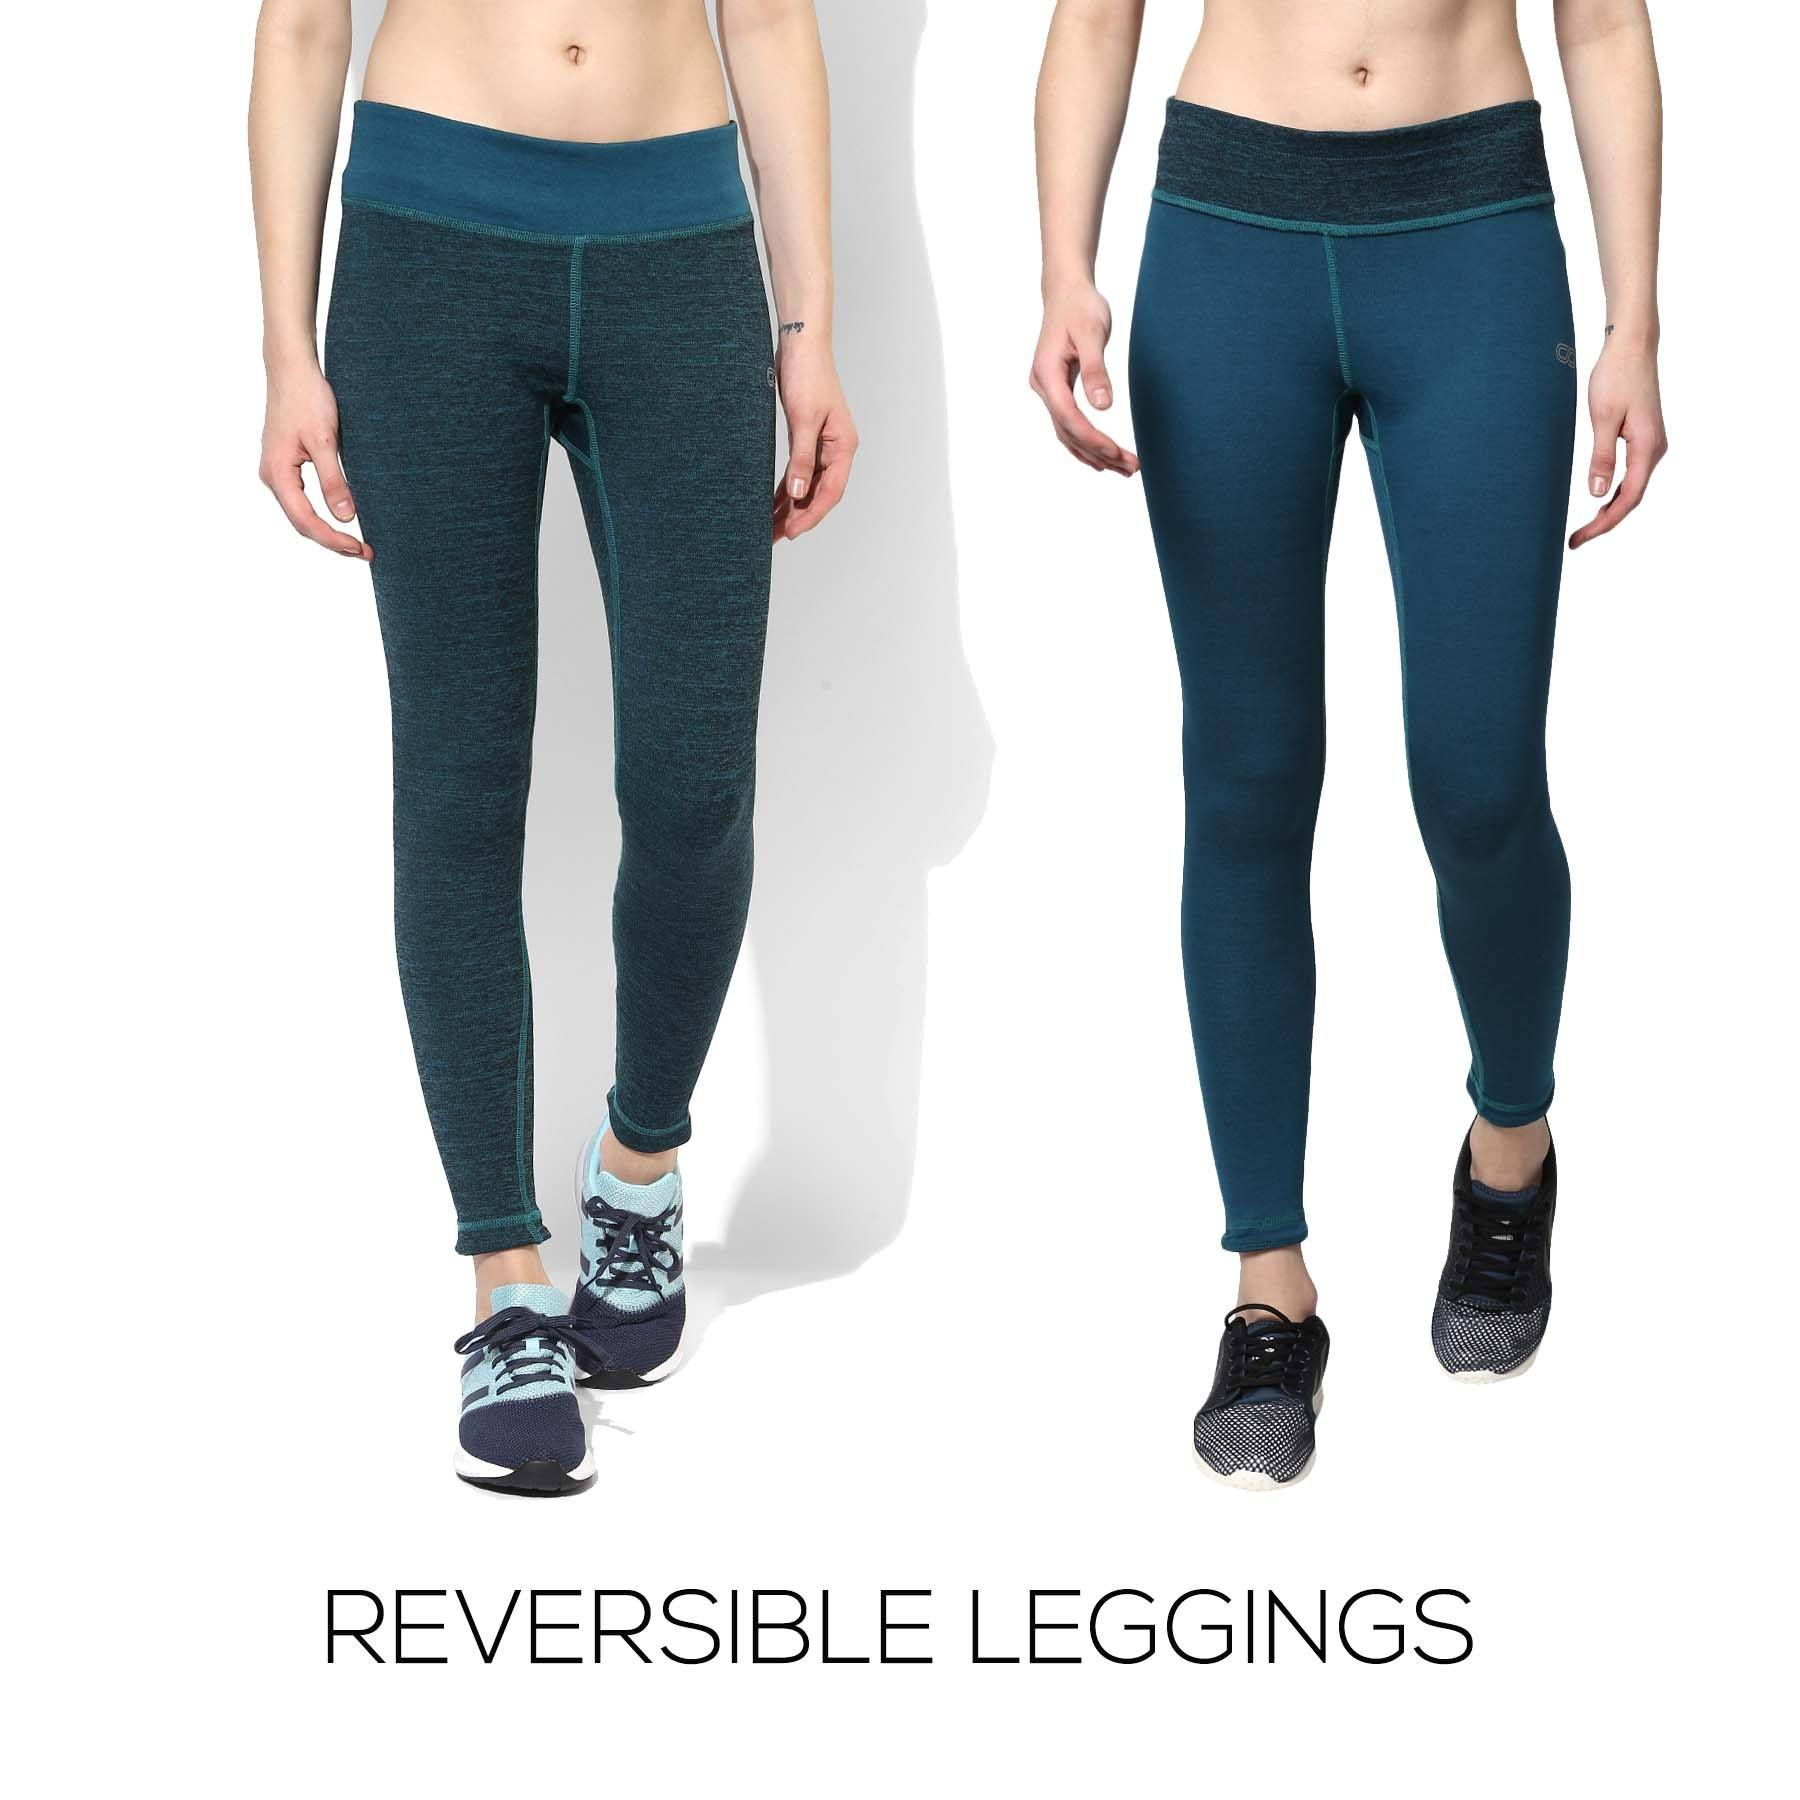 Silvertraq Reversible Leggings